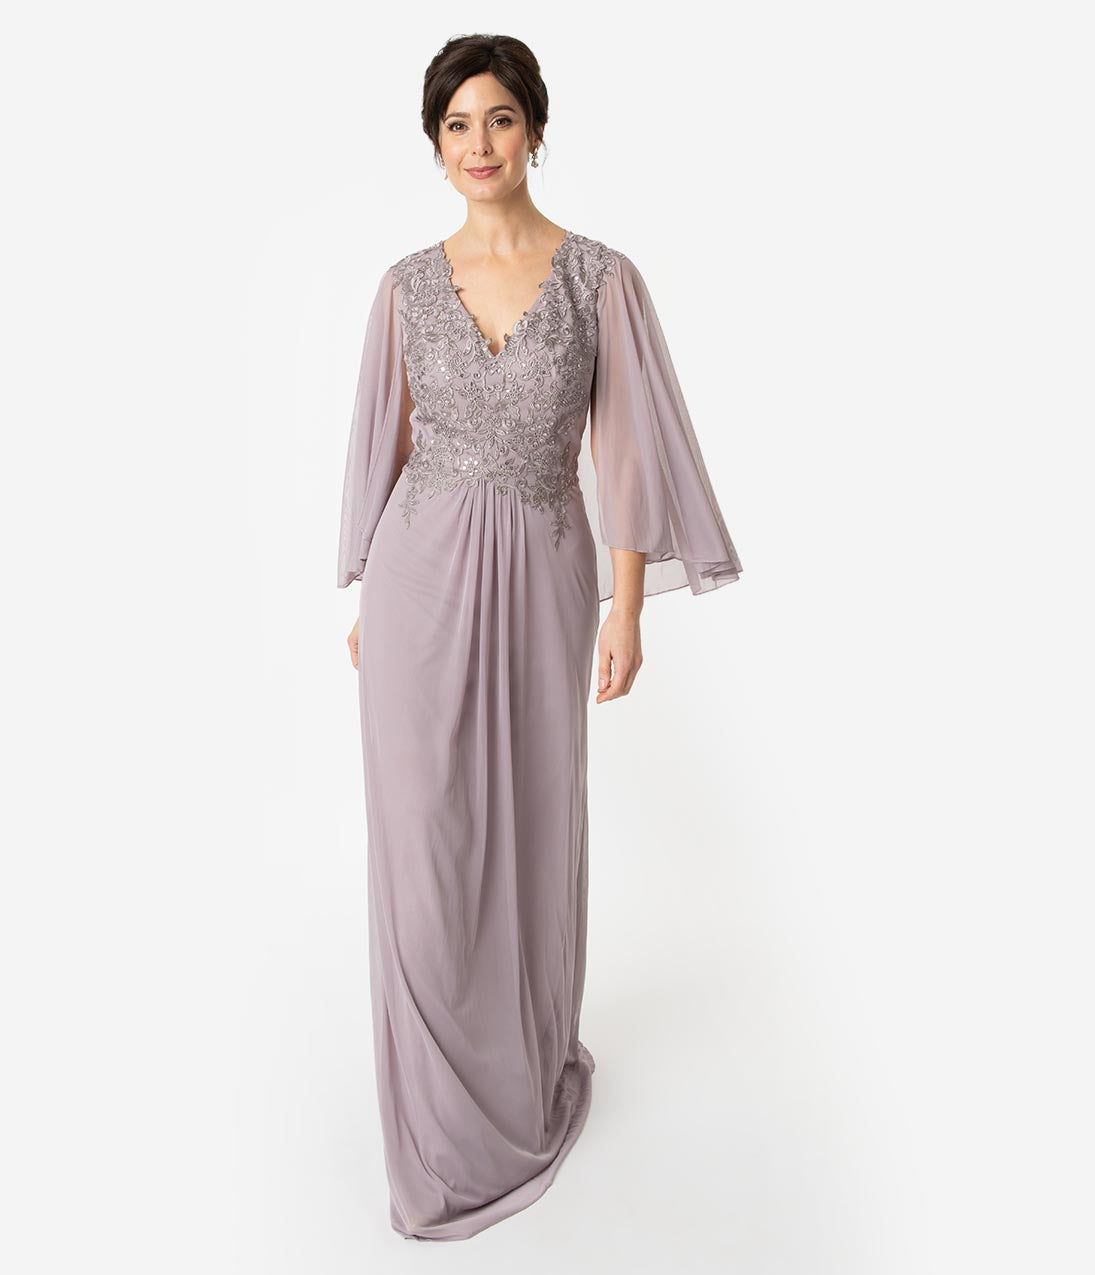 1920s Downton Abbey Dresses Mauve Embellished Chiffon Modest Cape Long Dress   172.00 AT vintagedancer.com ce009d9fbc61